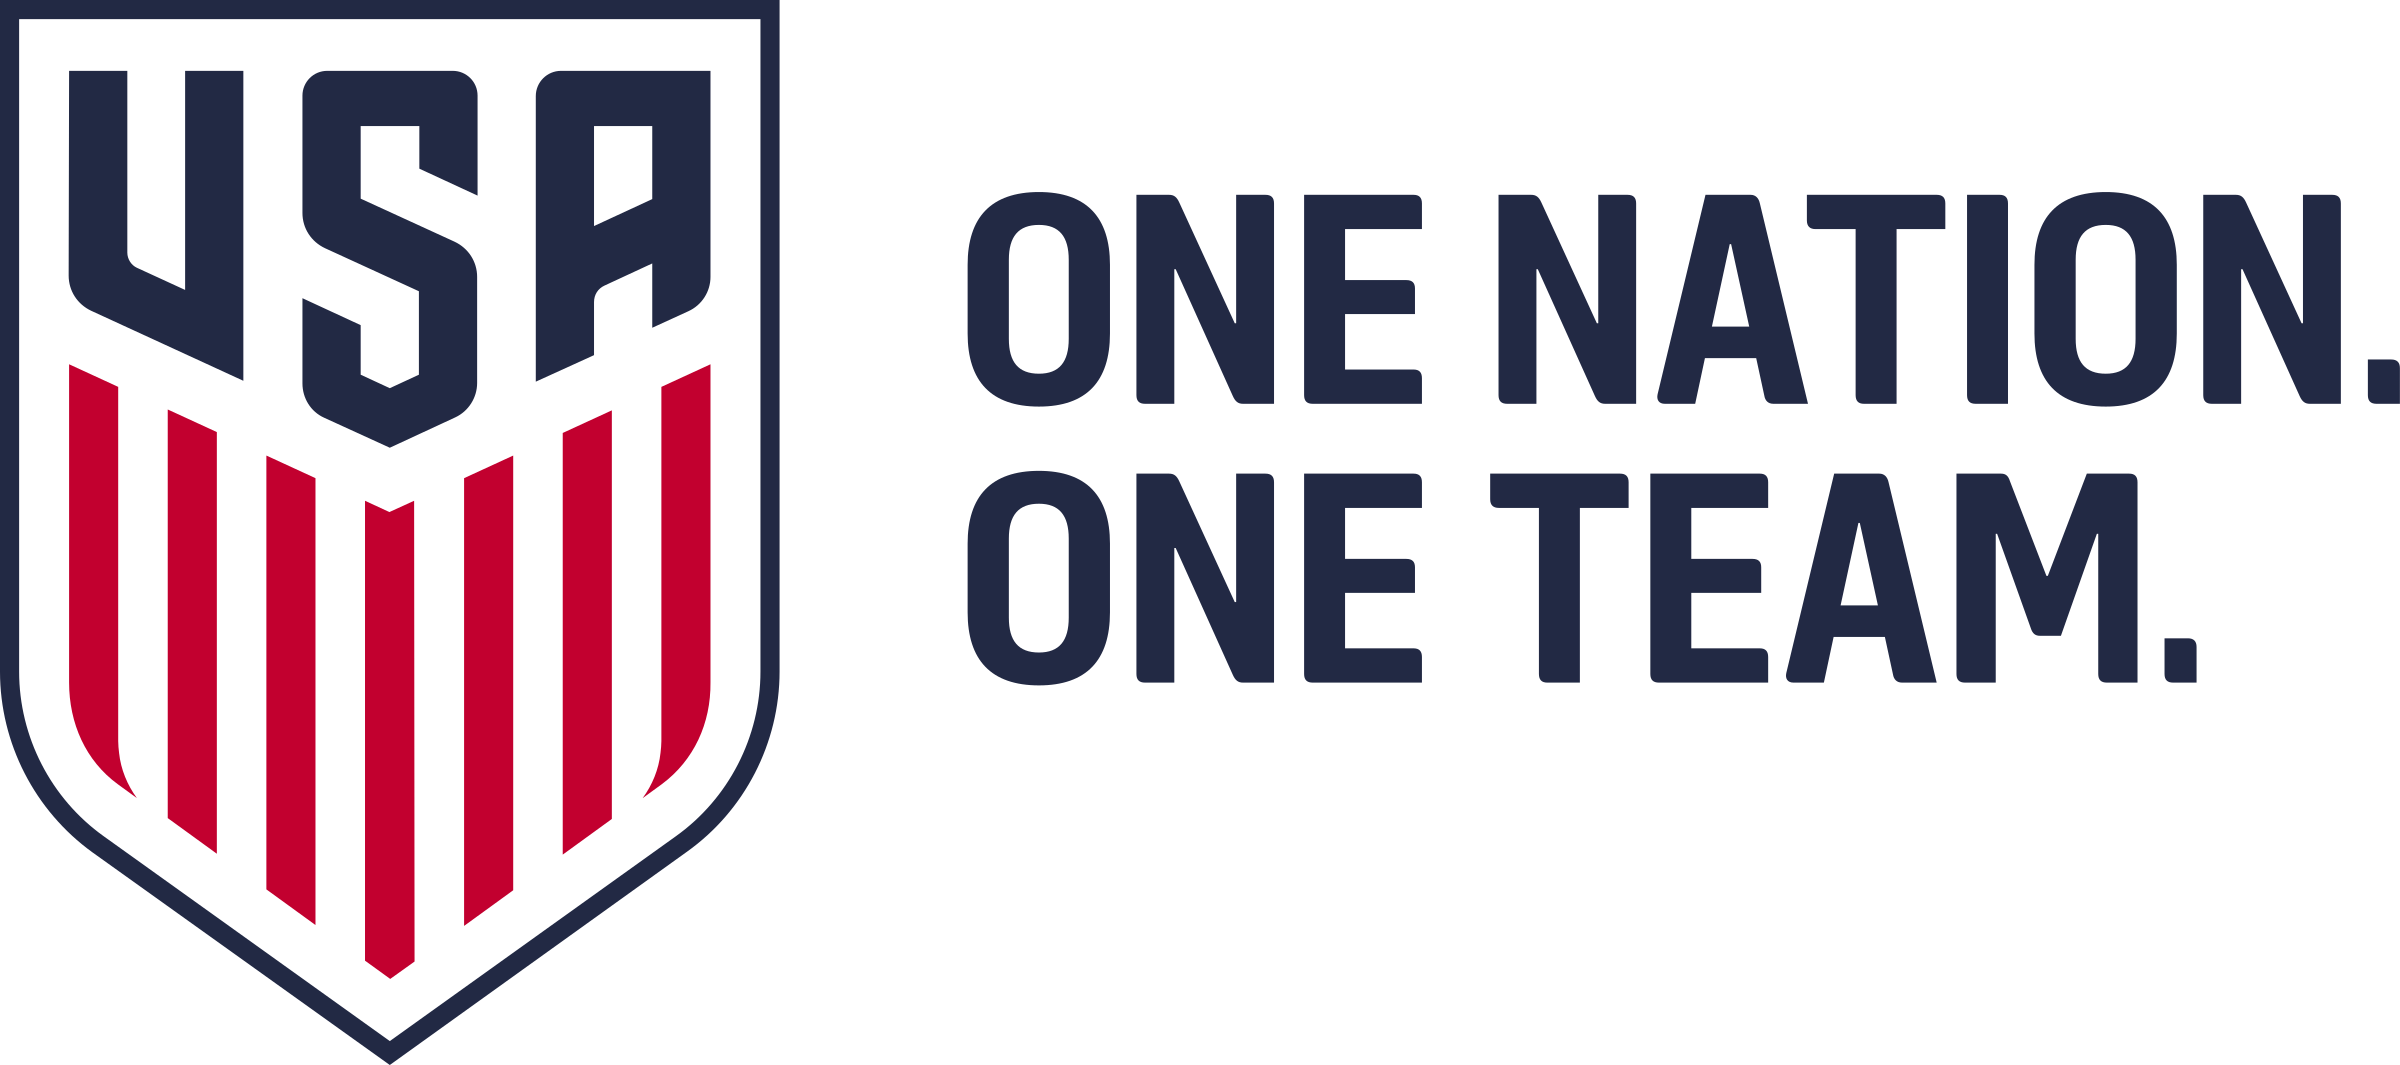 One vector team. Usa nation logo png